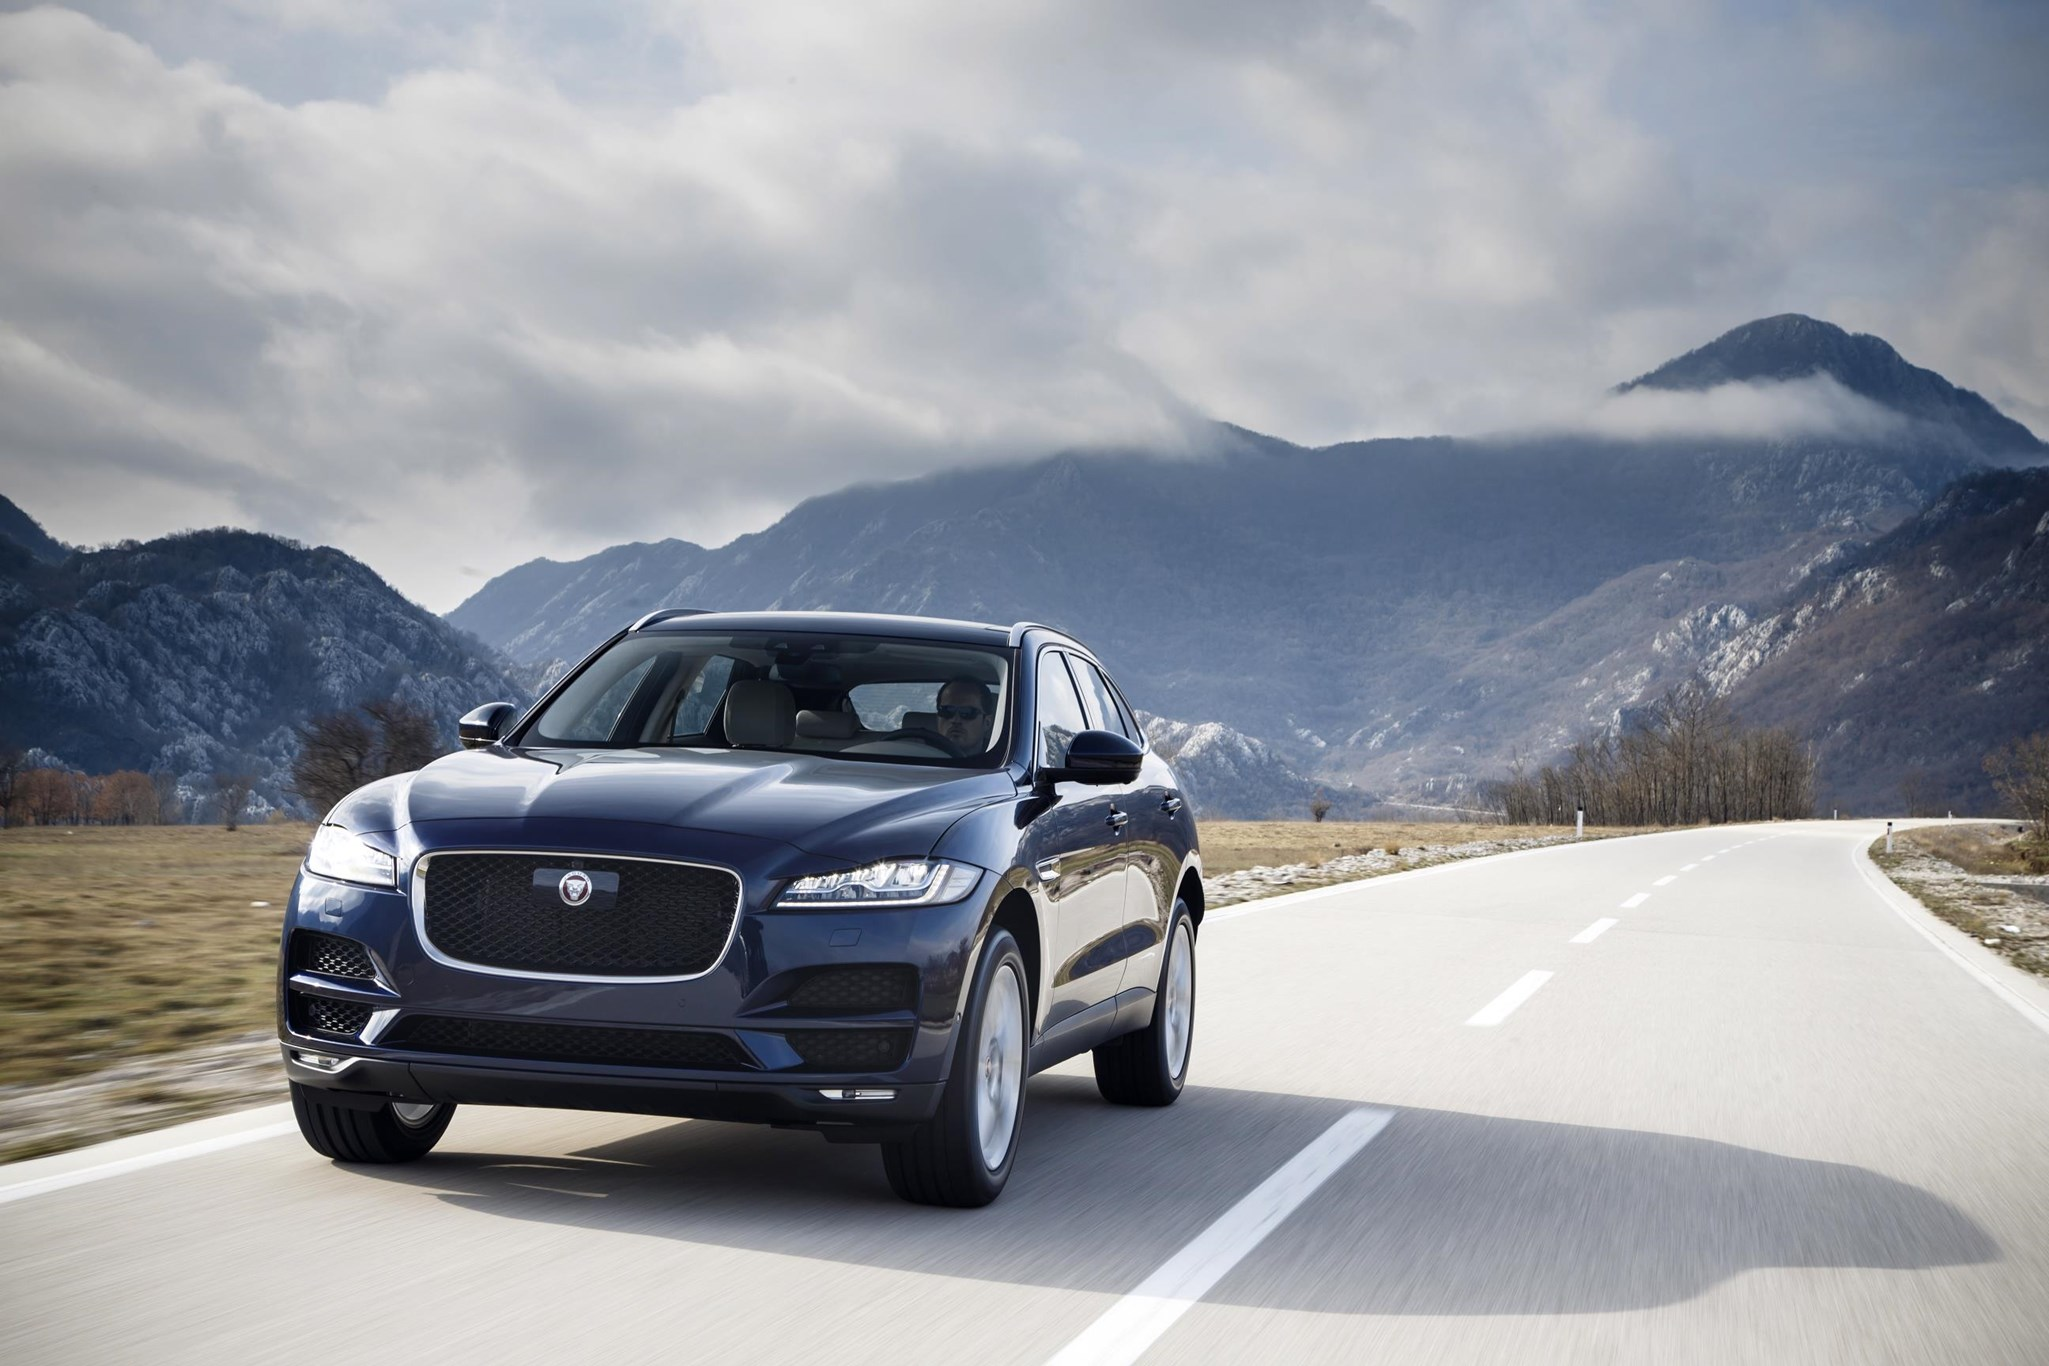 New 2018 Ingenium Engines Pep Up Jaguar F Pace Xe Xf